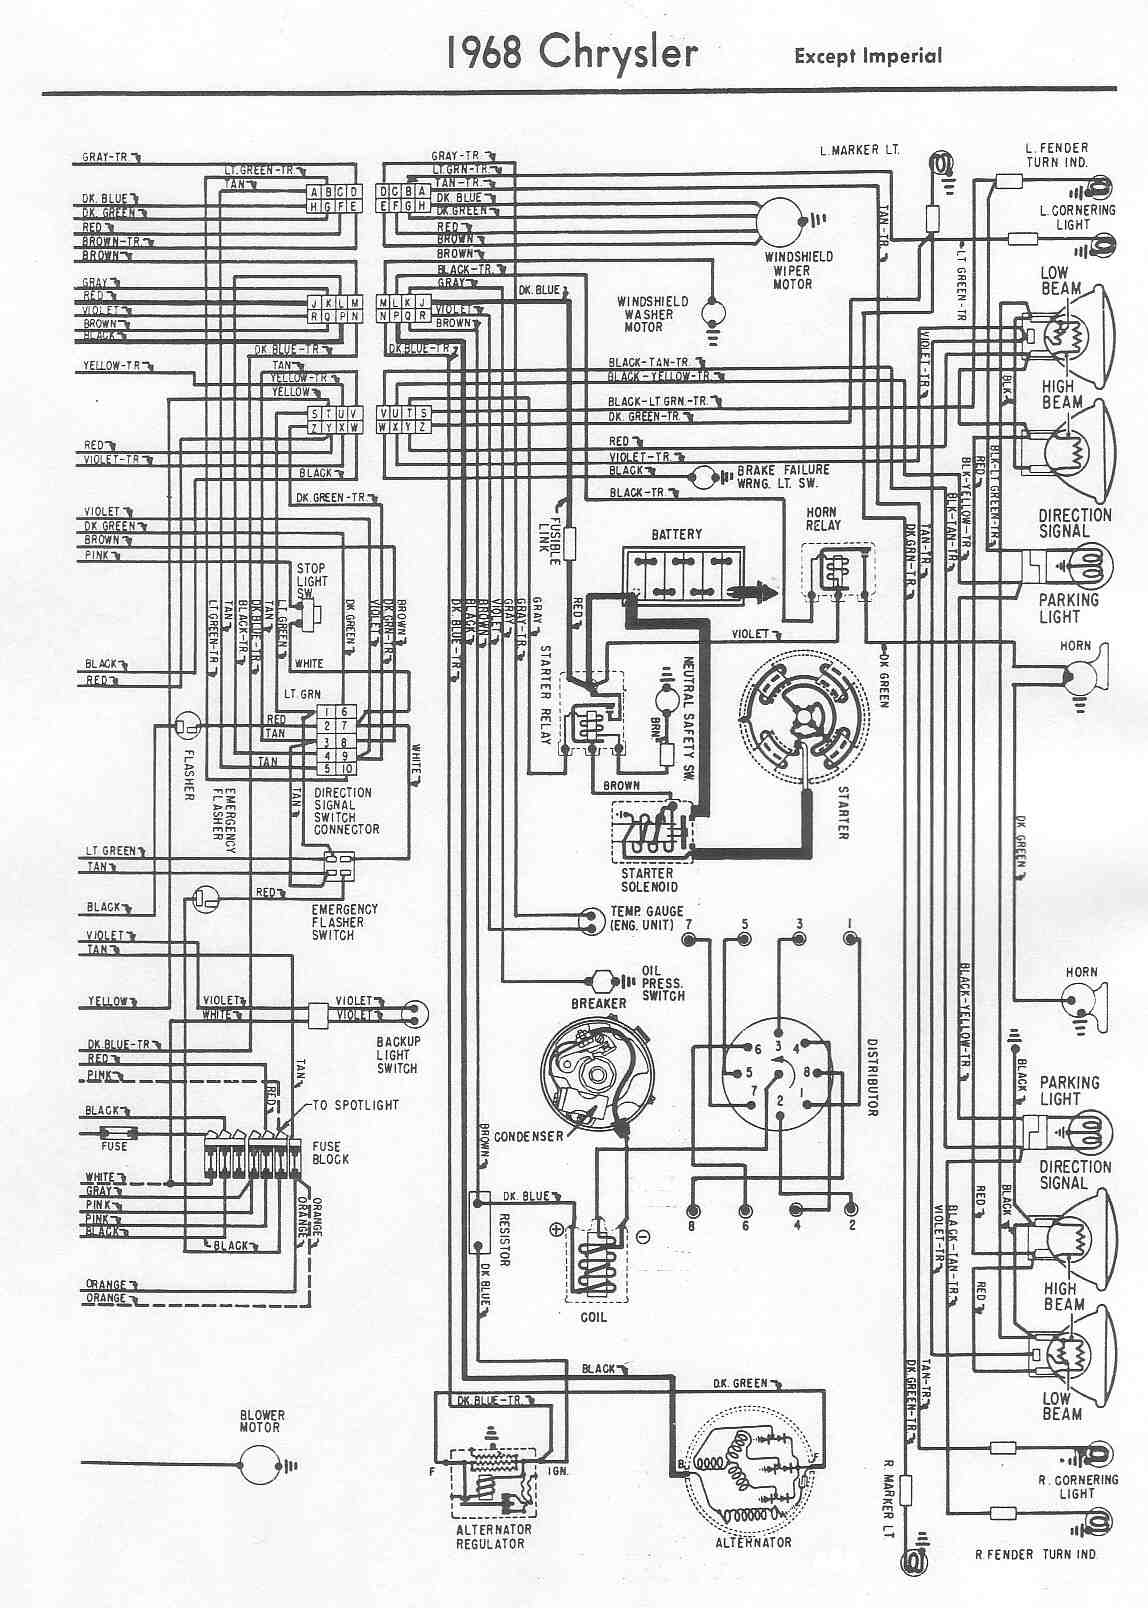 medium resolution of chrysler car manuals wiring diagrams pdf fault codes 1955 imperial 1951 chrysler new yorker